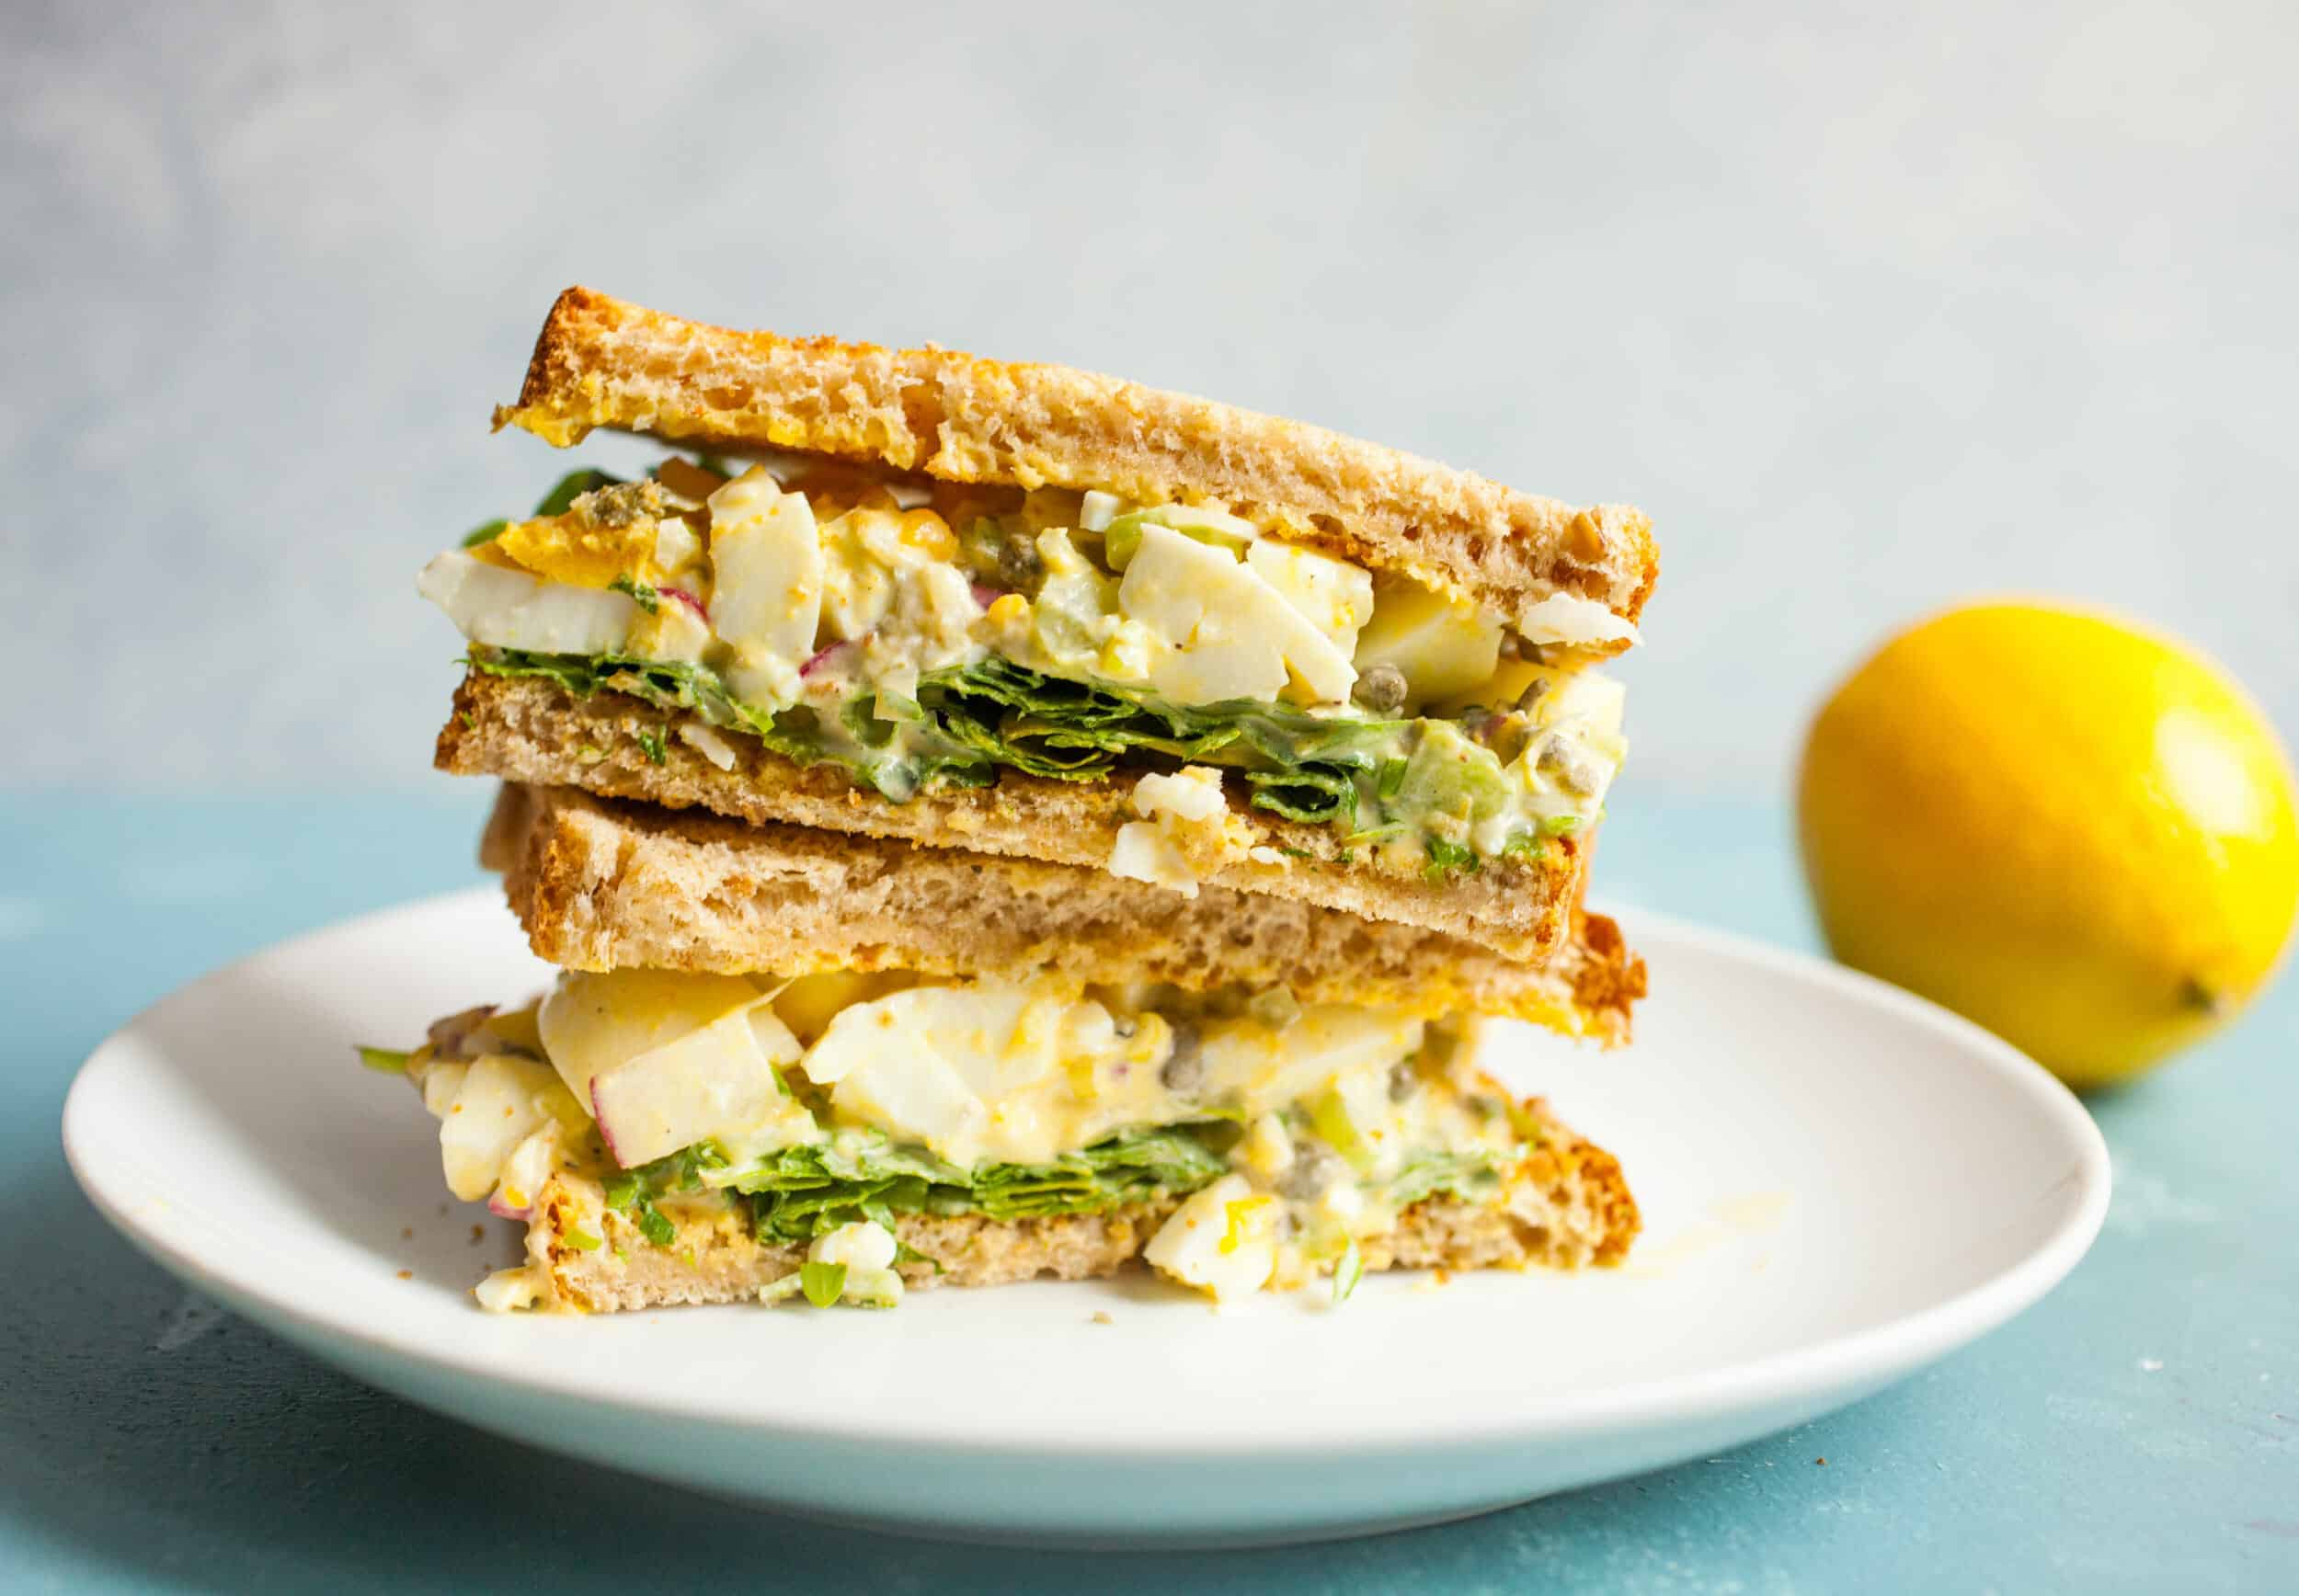 Lemon Caper Egg Salad: Egg salad can be so delicious if you make it right. This version is bright and crunchy with just enough dressing to keep it together. Serve it on white bread with some fresh arugula! | macheesmo.com